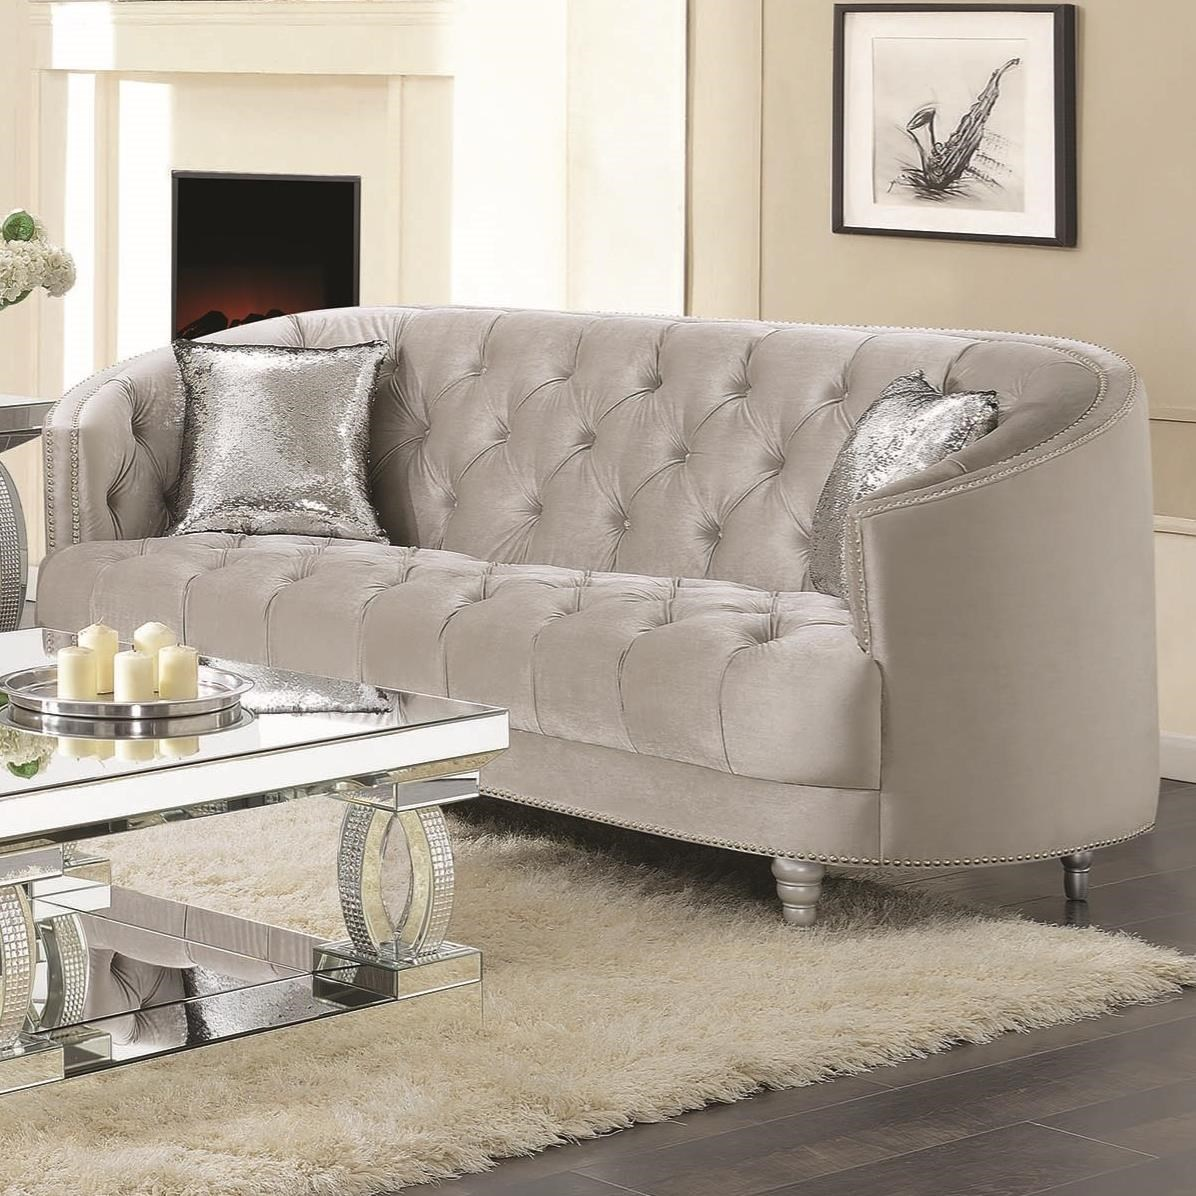 Avonlea Sofa by Coaster at Miller Home